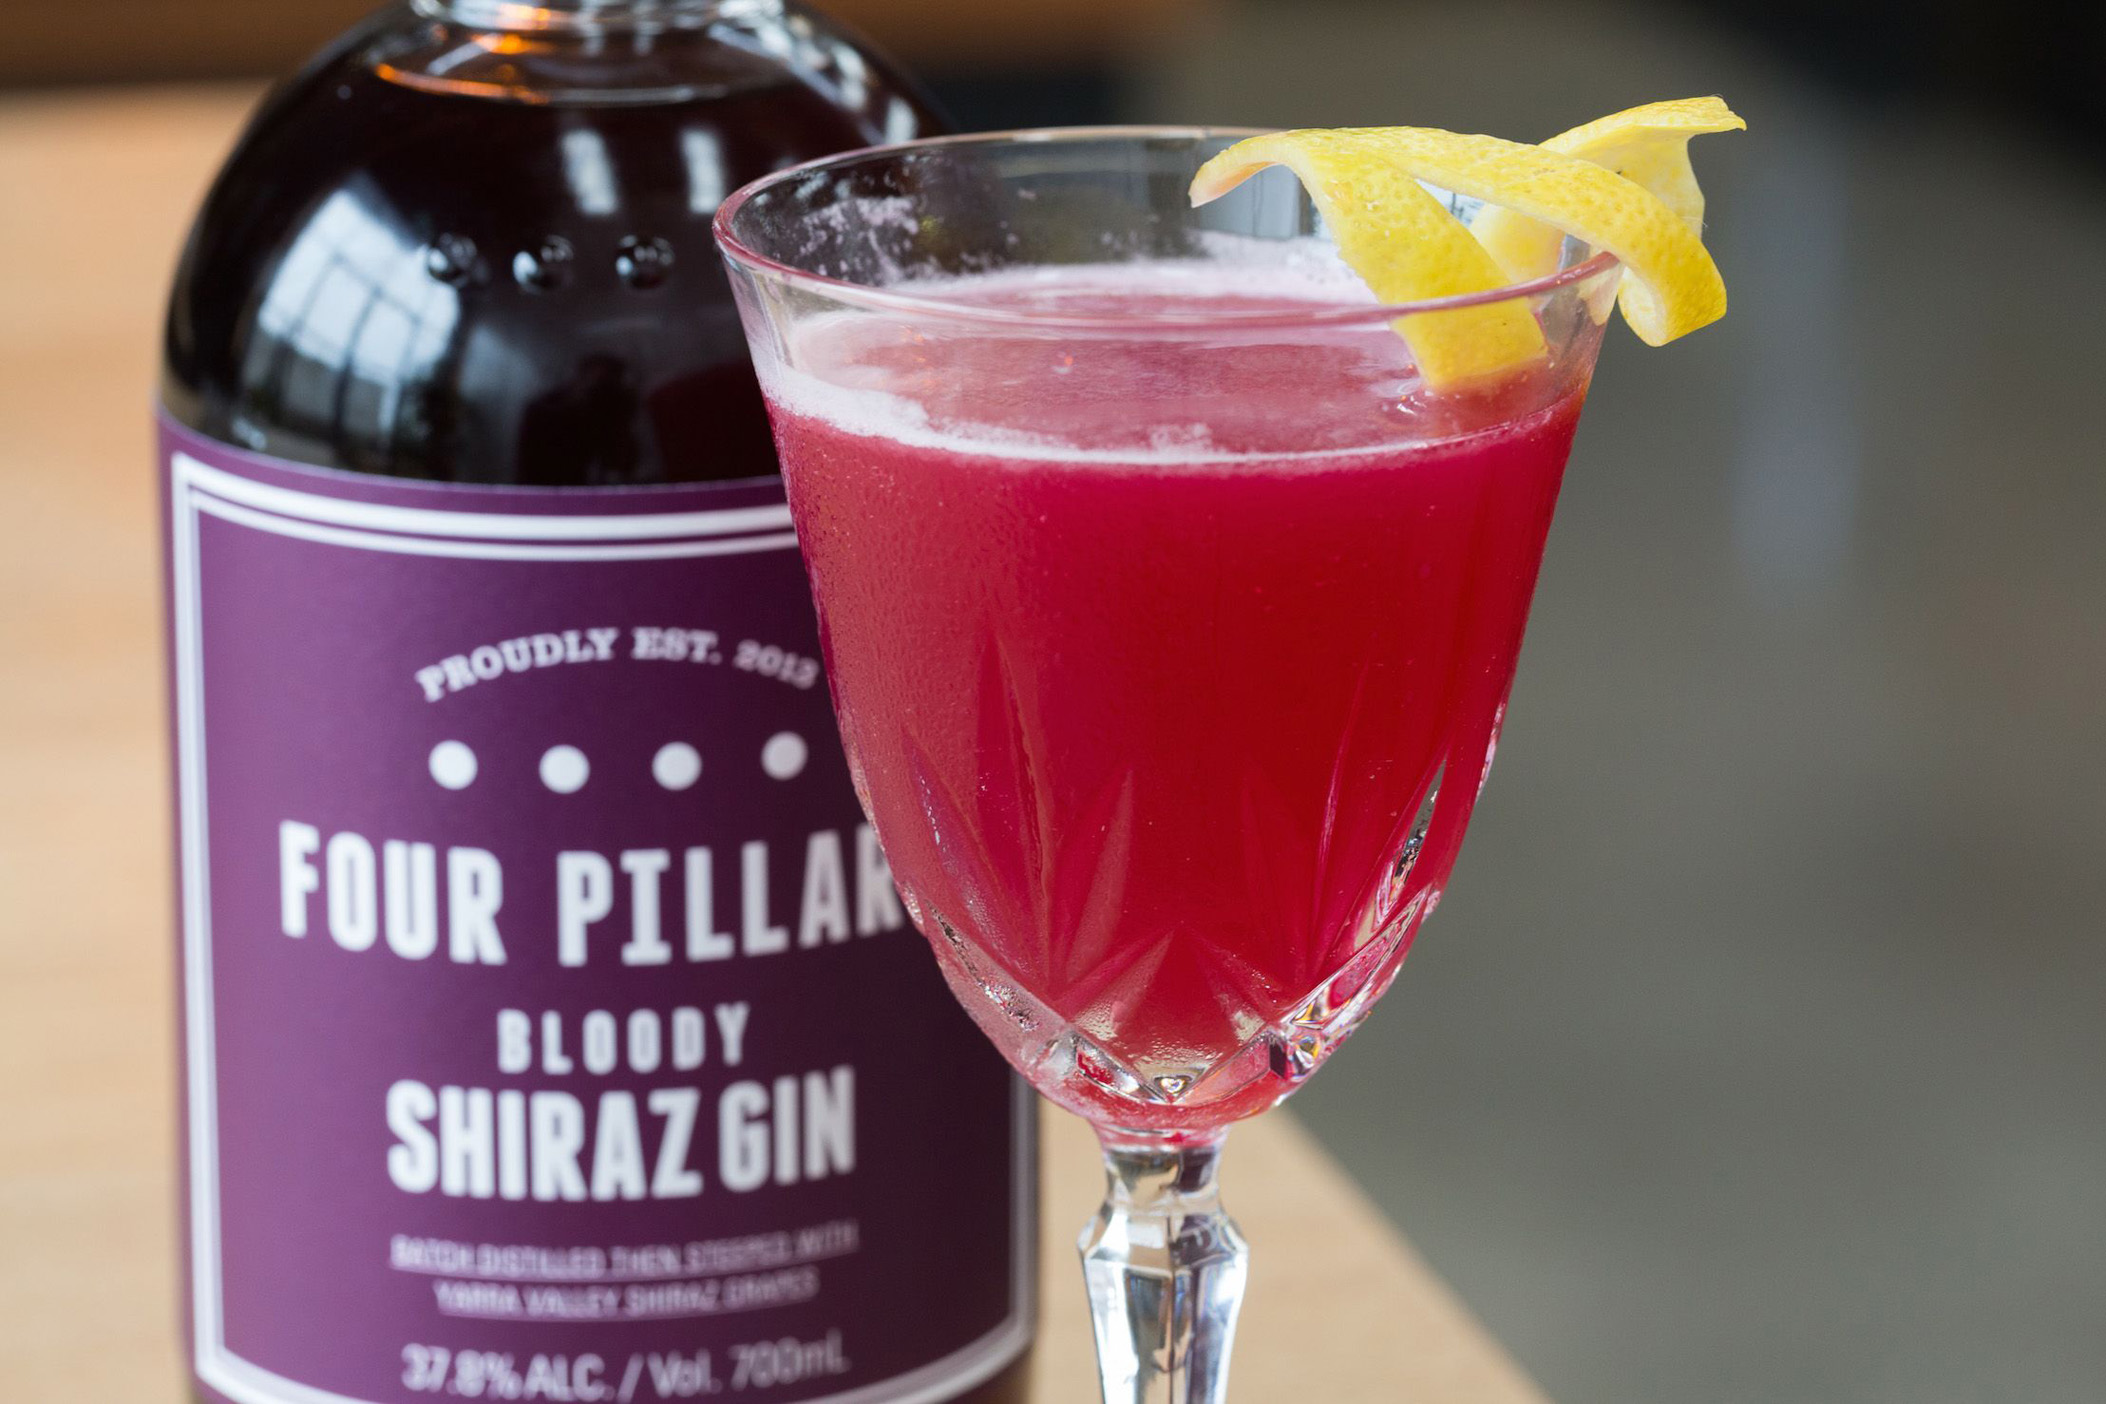 Four Pillars Bloody Shiraz Gin (Four Pillars/PA)